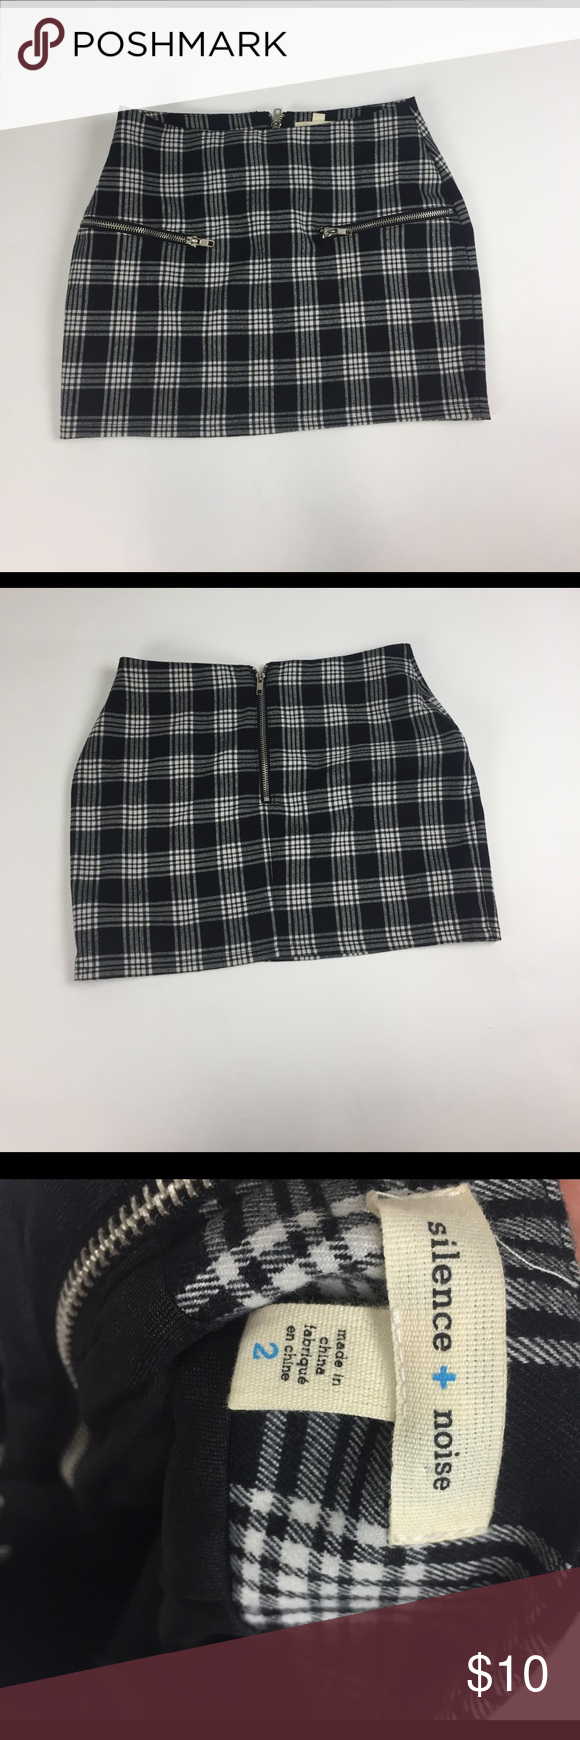 2fd3dbce78a2 Silence+Noise plaid mini skirt Silence + Noise by Urban Outfitters, black  and white plaid pattern mini skirt with